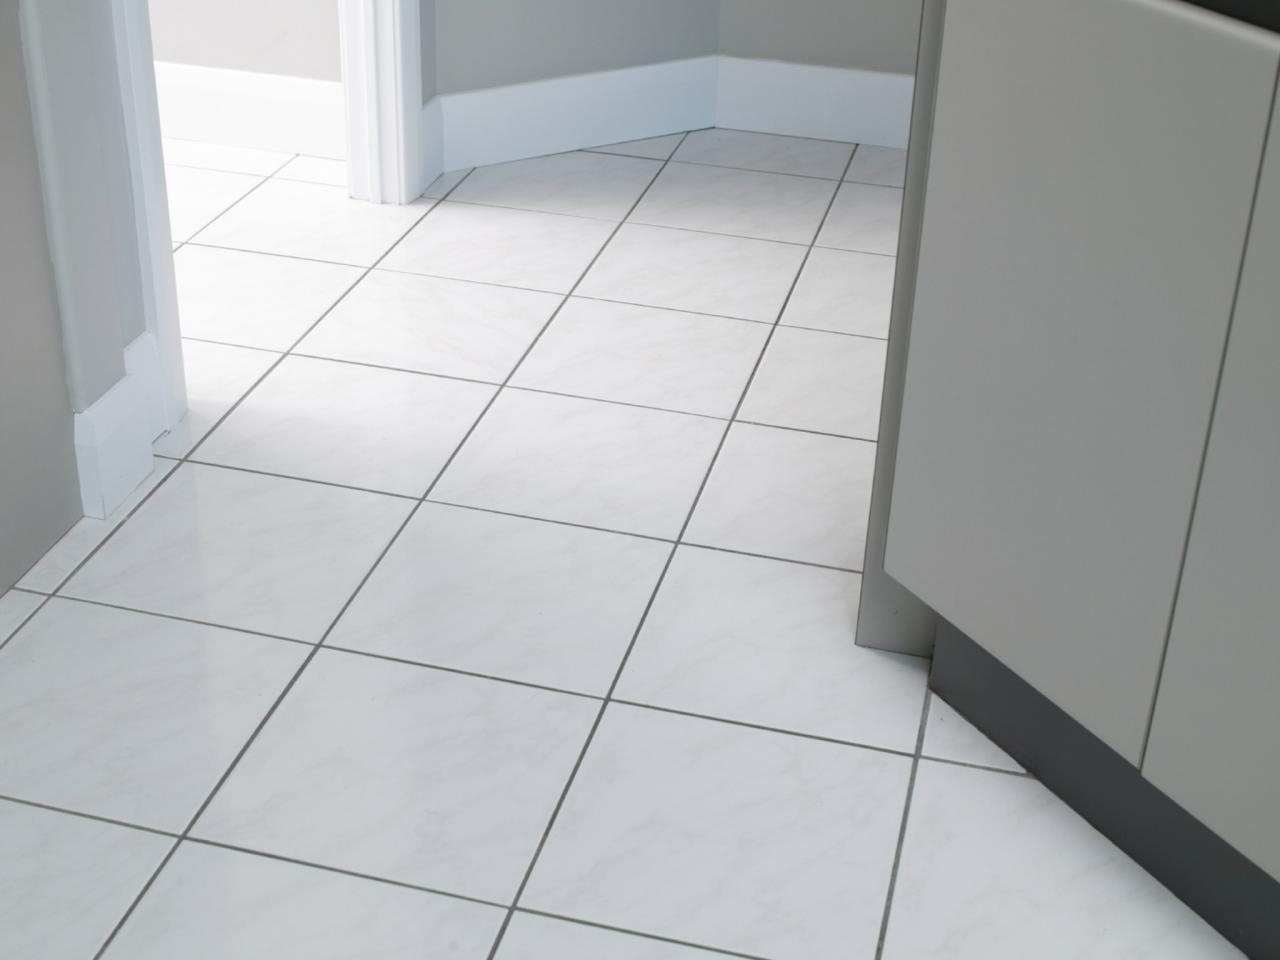 Ceramic Tile Sealing Substrate Solutions Flooring